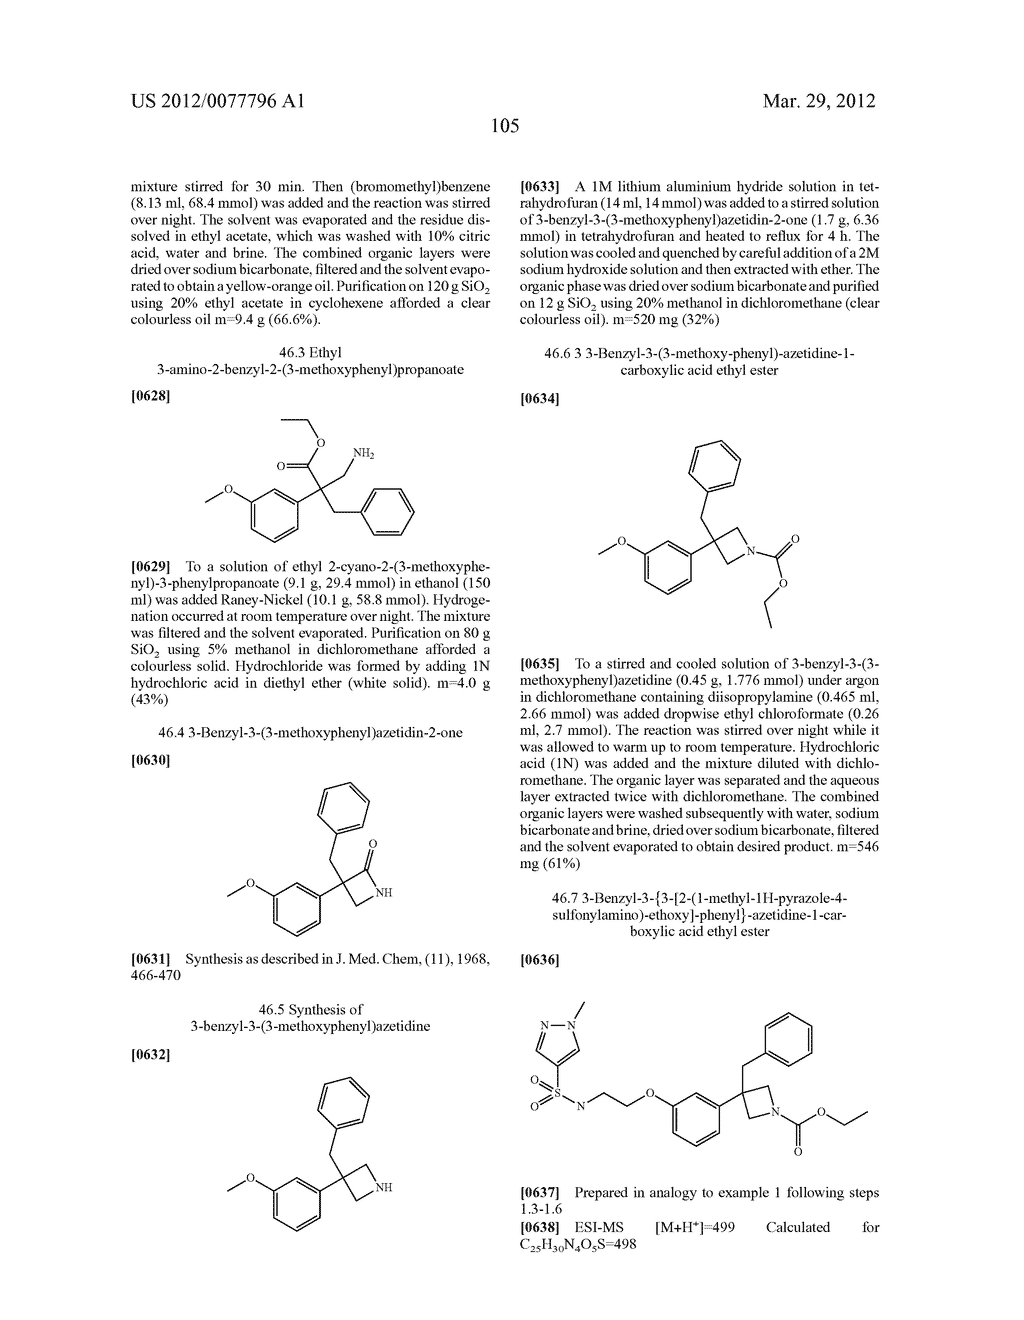 PHENALKYLAMINE DERIVATIVES, PHARMACEUTICAL COMPOSITIONS CONTAINING THEM,     AND THEIR USE IN THERAPY - diagram, schematic, and image 106